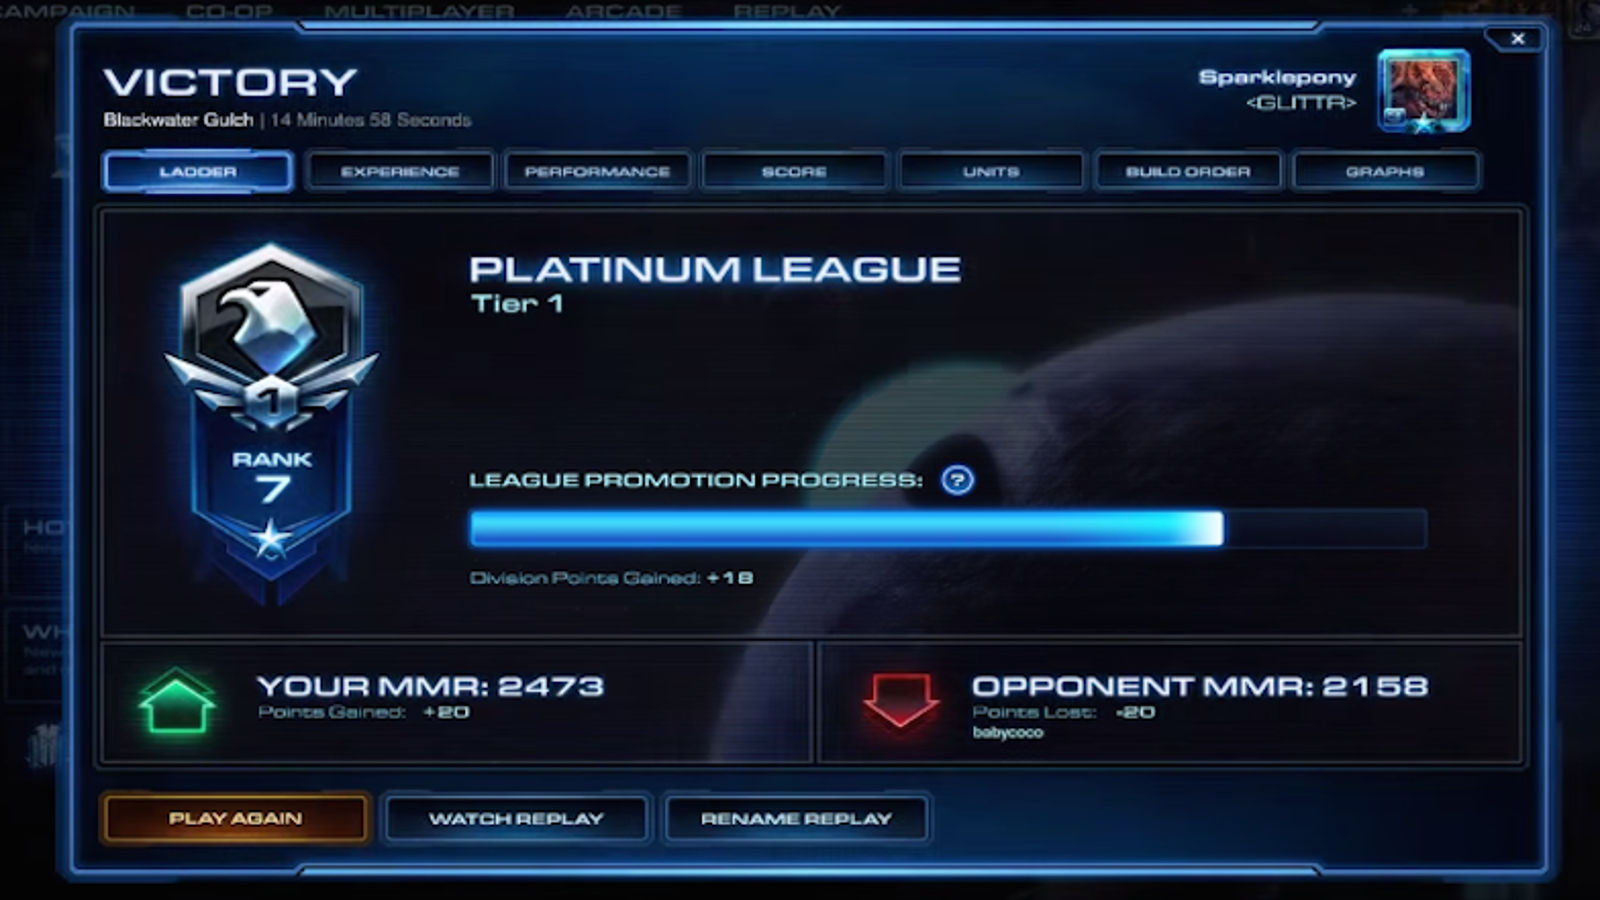 Starcraft 2 matchmaking doesnt work